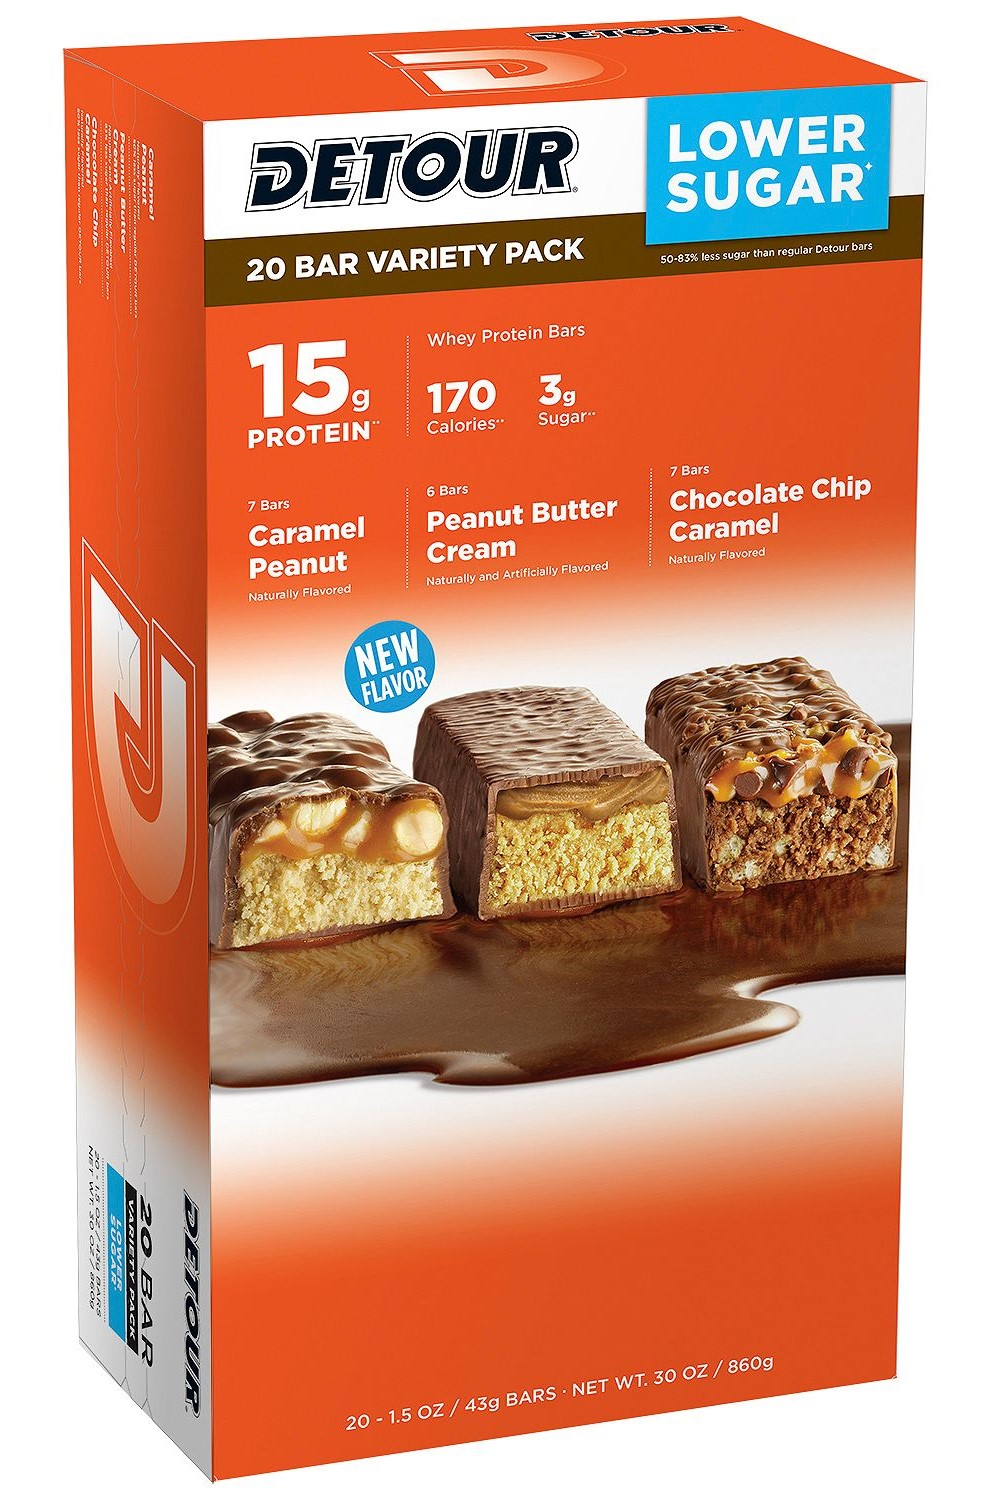 Detour Lower Sugar Protein Bar, Variety Pack (1.5 oz., 20-ct.)